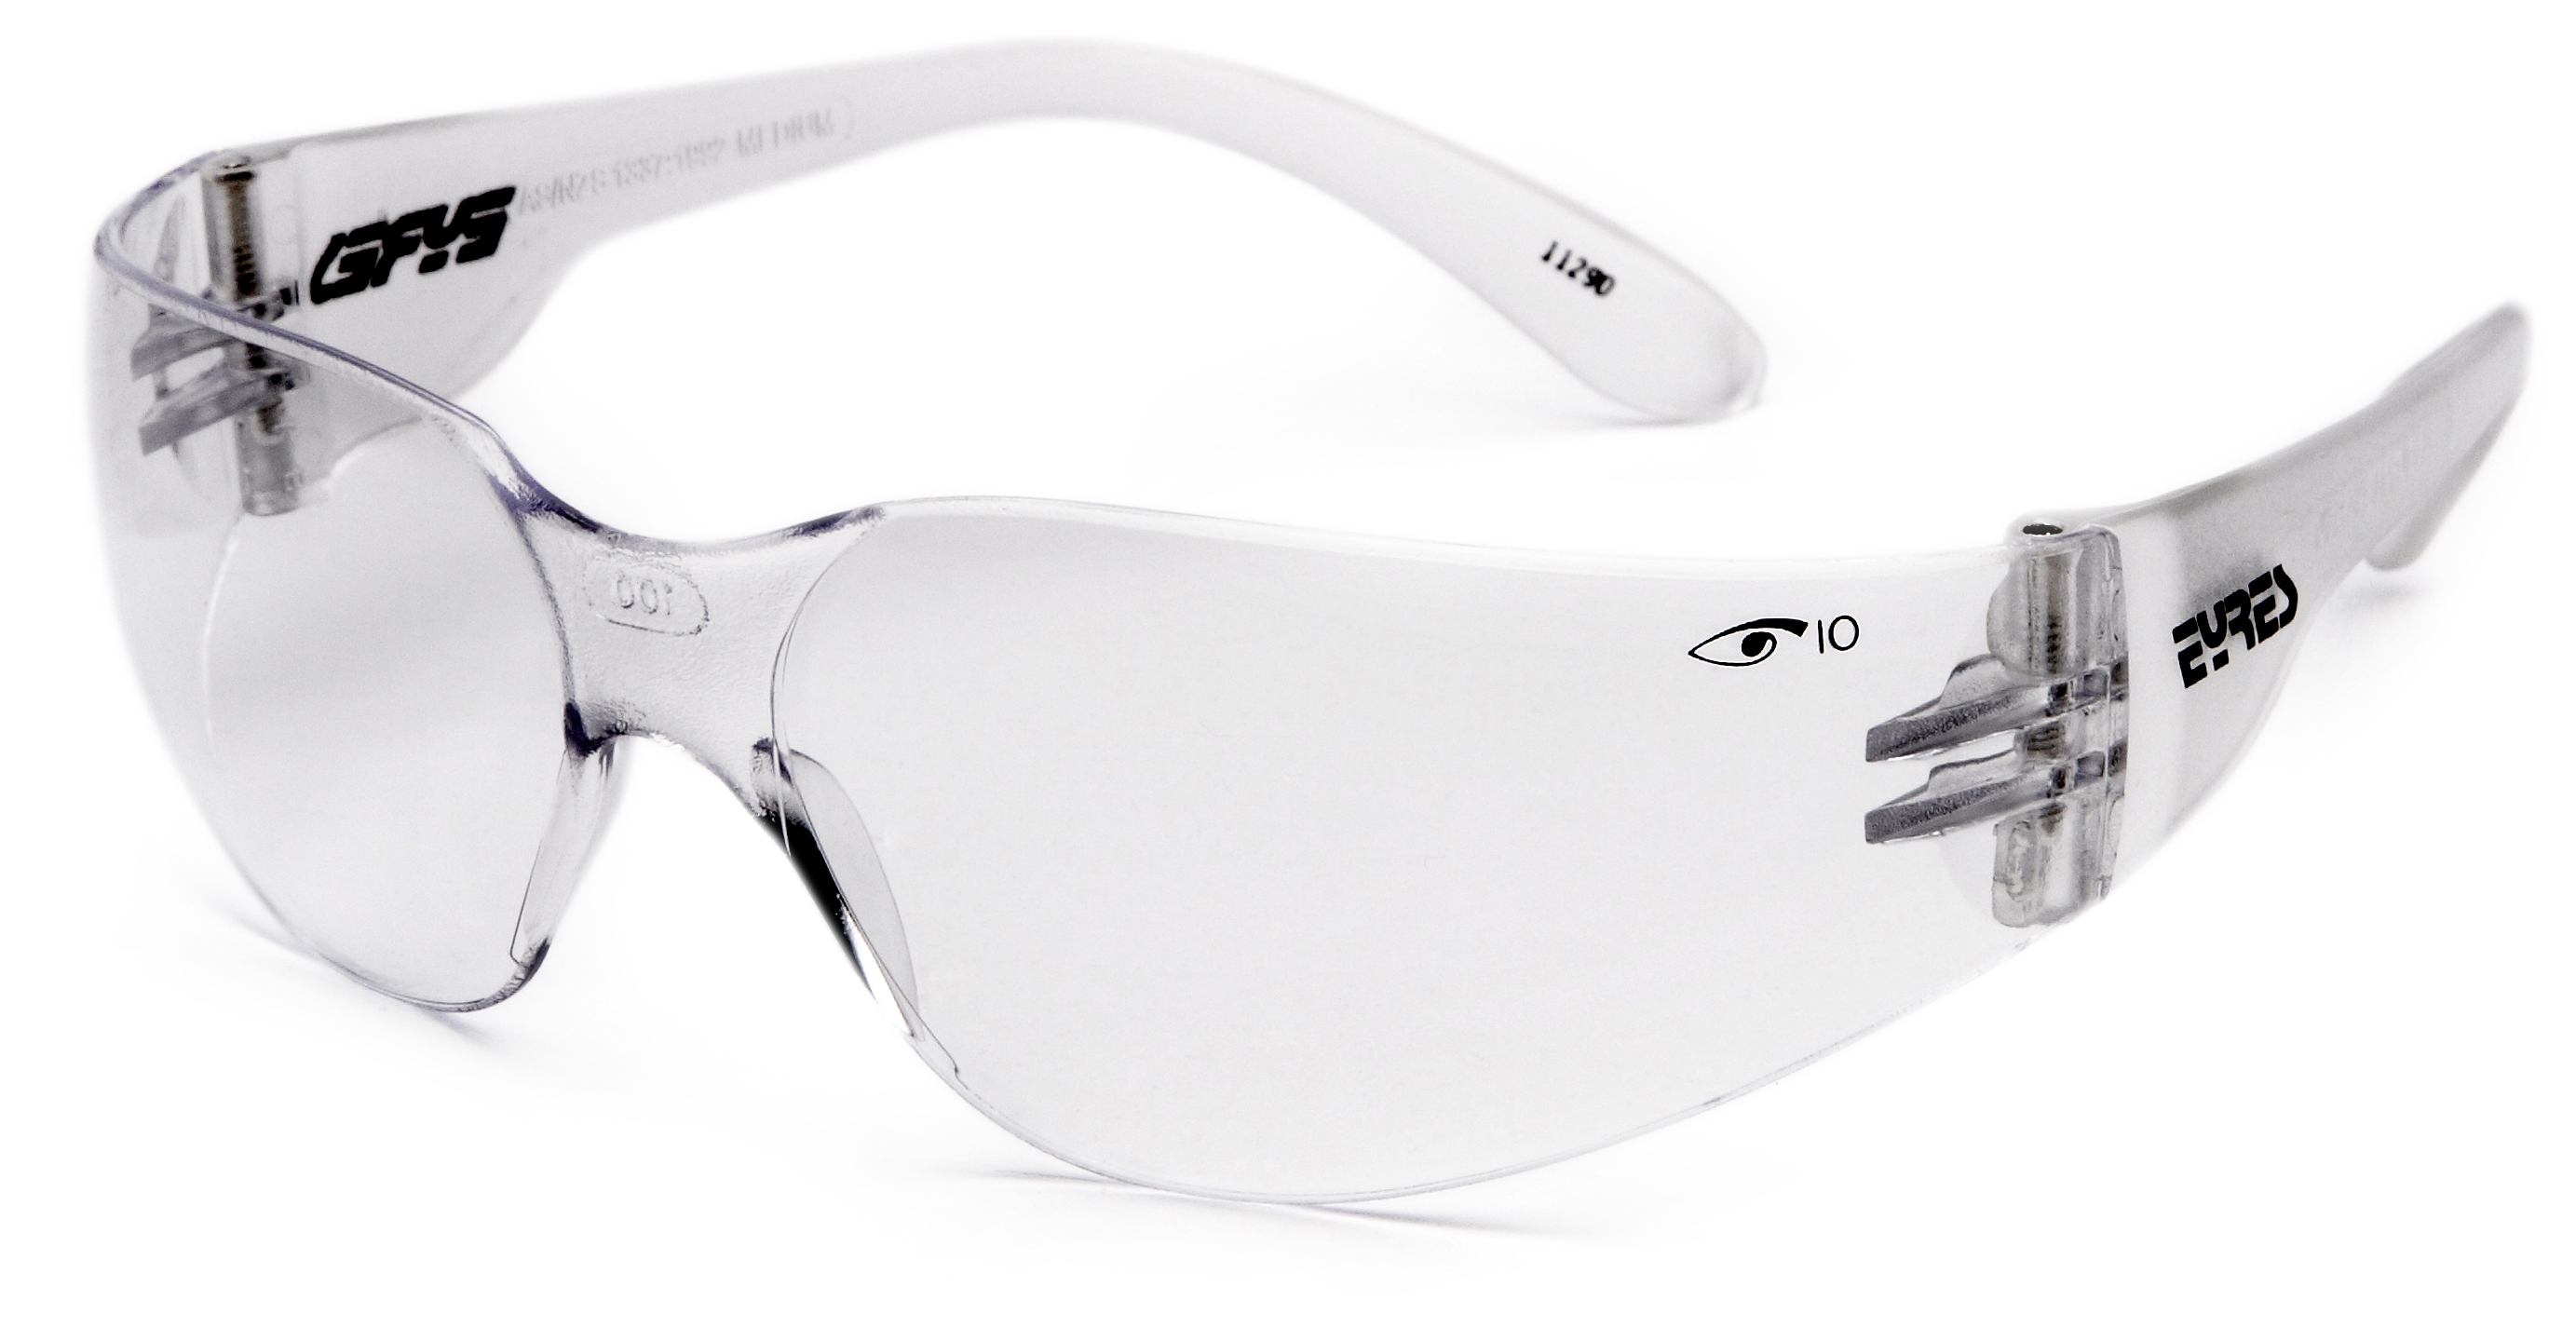 Certified Eye Protection